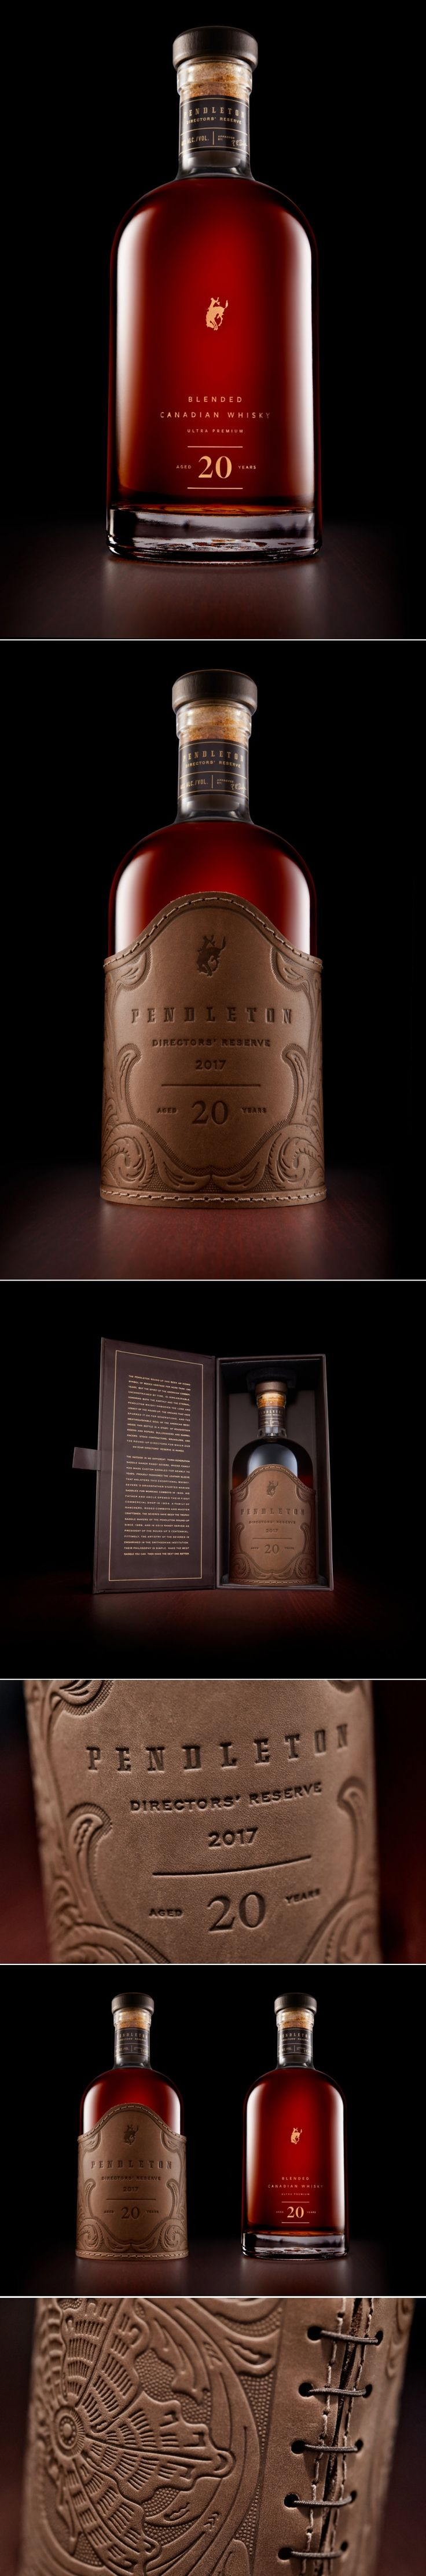 The Sophisticated Pendleton Directors' Reserve Canadian Whisky — The Dieline - Branding & Packaging Design